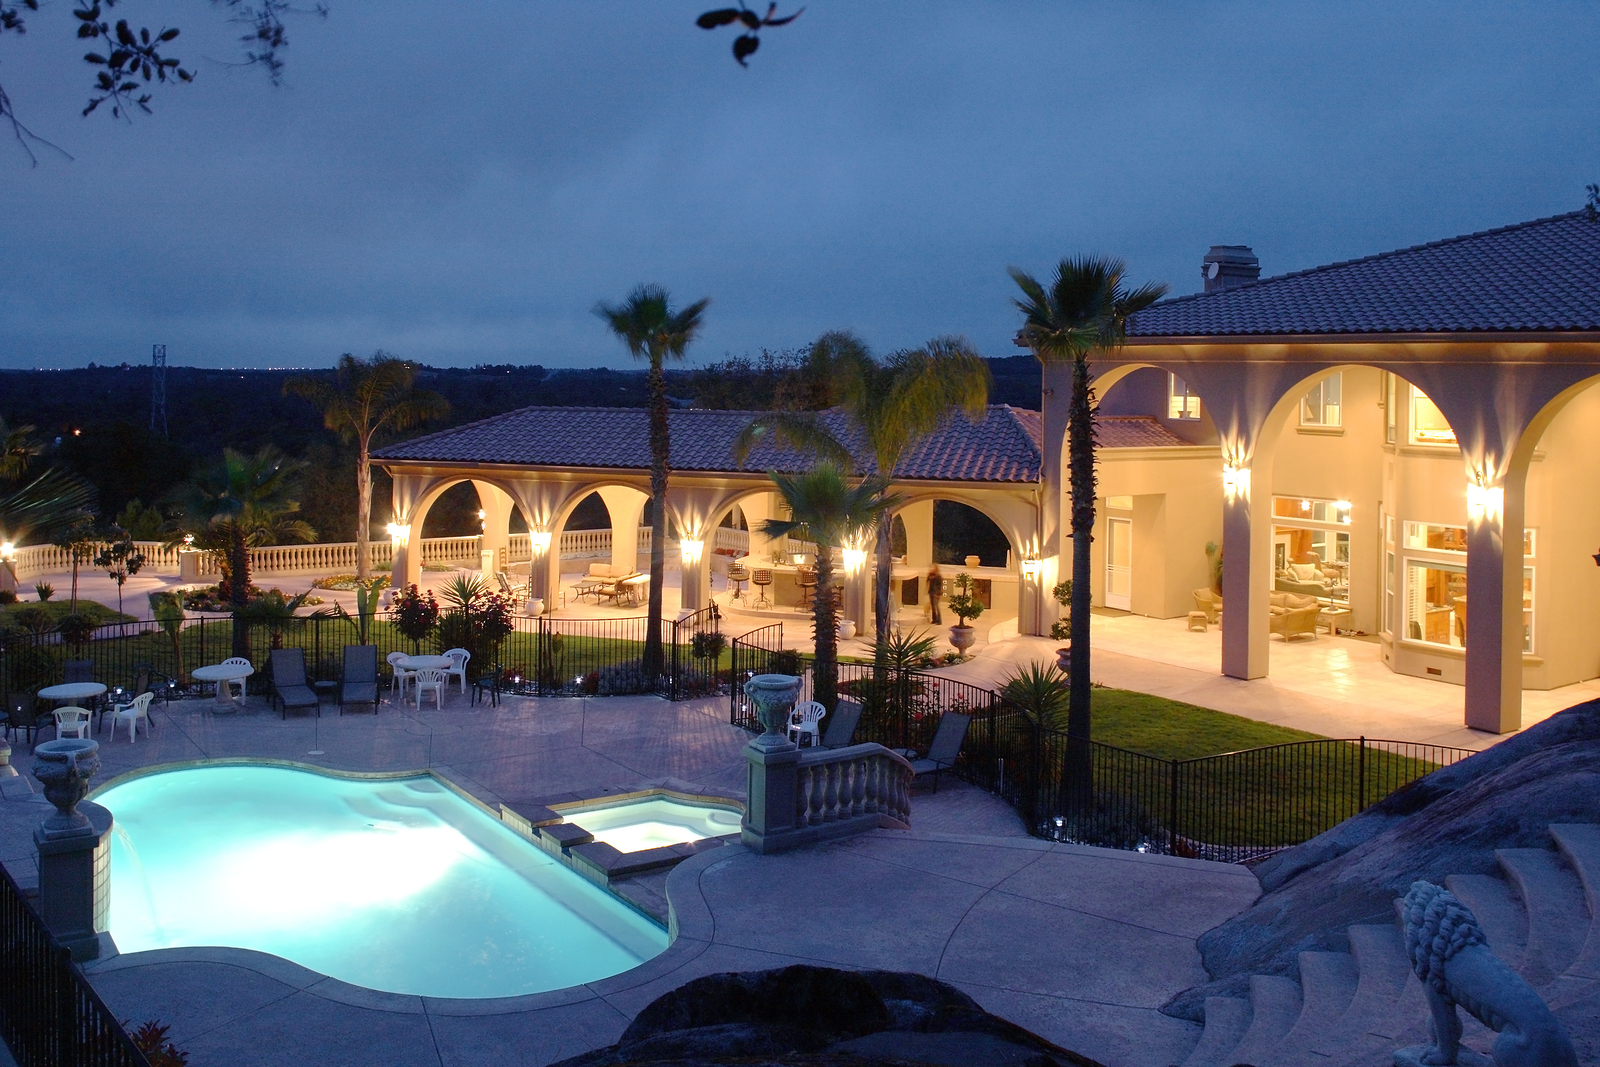 bigstock-A-huge-new-luxury-home-at-suns-26417114.jpg